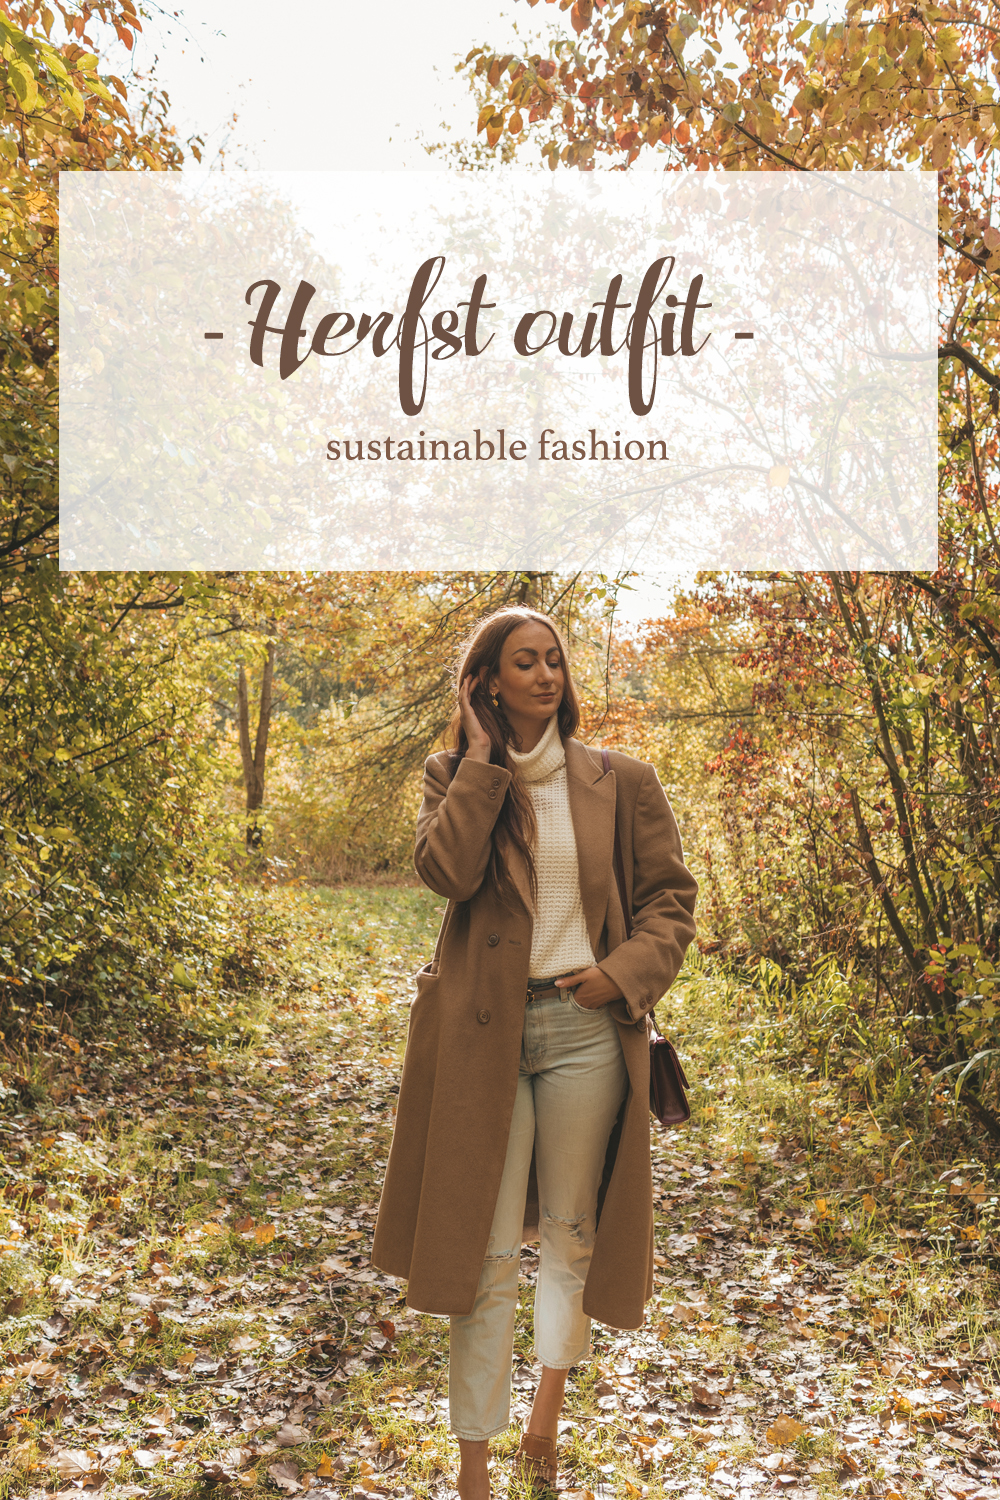 Herfst outfit sustainable fashion